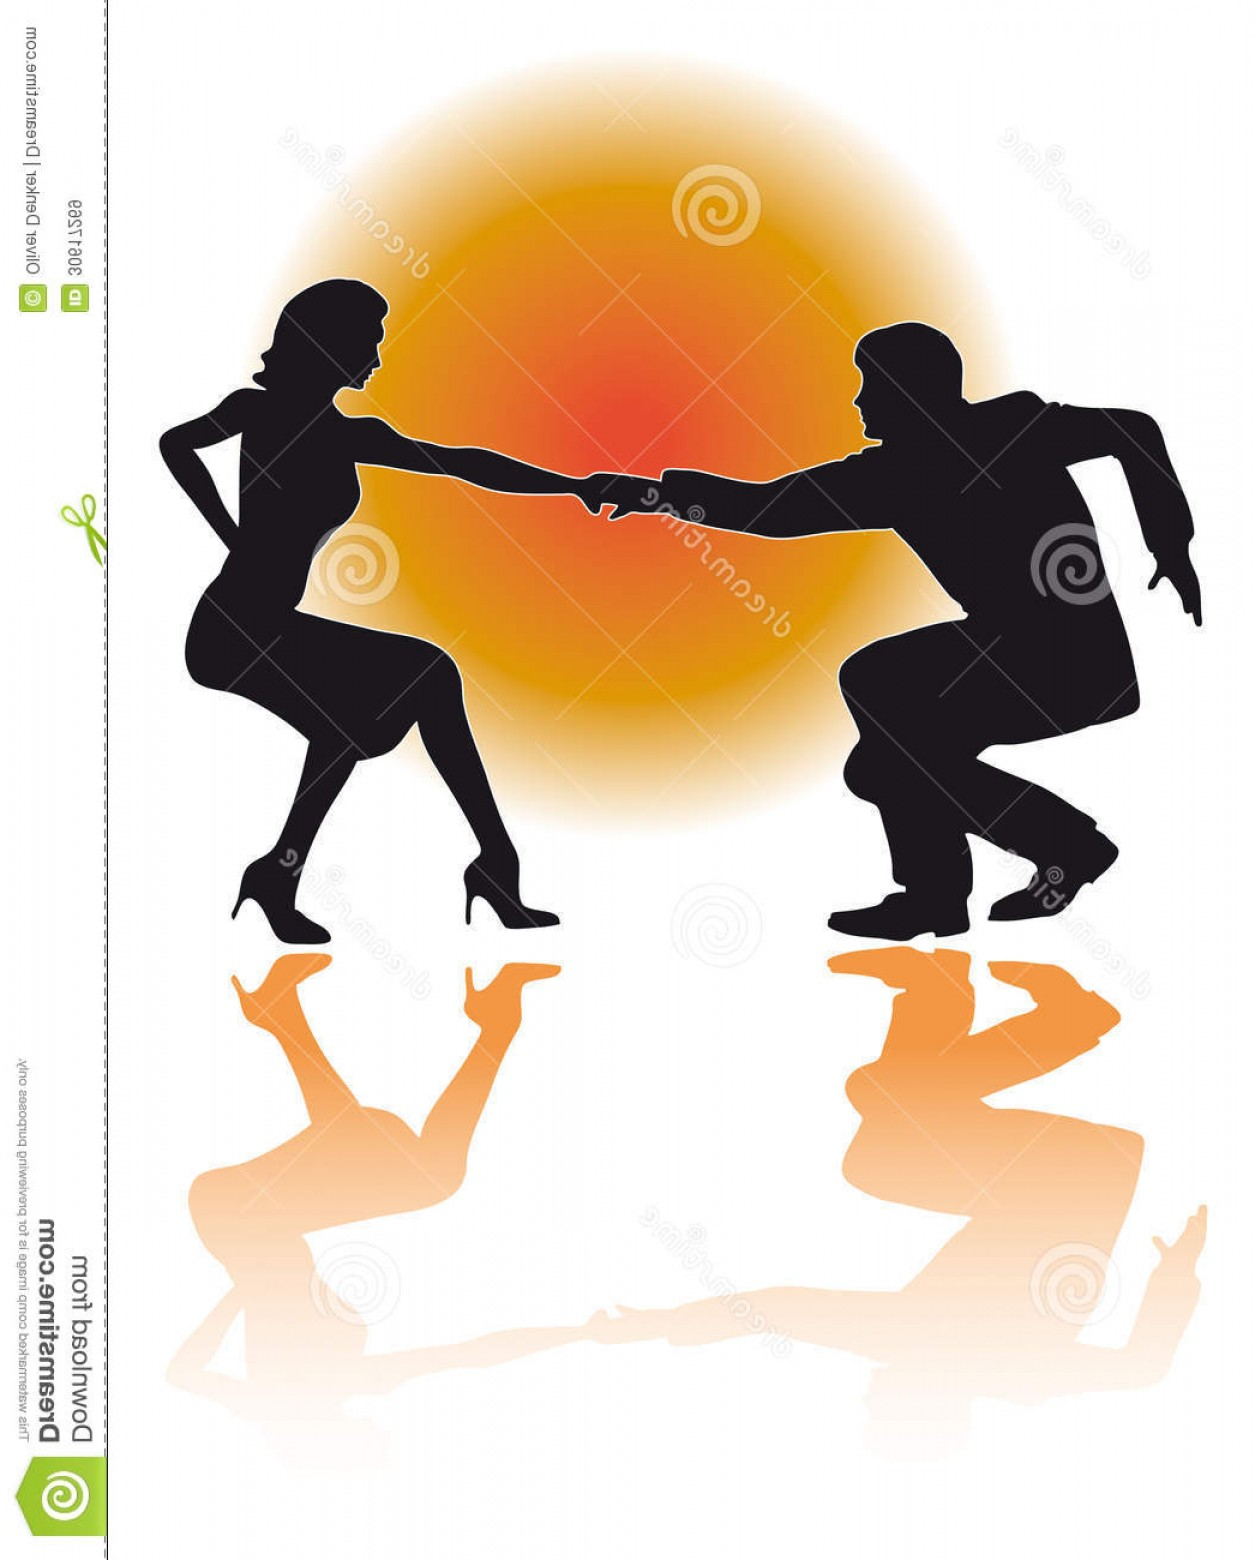 Vector Swing Dancers: Royalty Free Stock Images Swing Dancing Couple Vector Silhouette Illustration Eps Version Dance Poses Variations Image